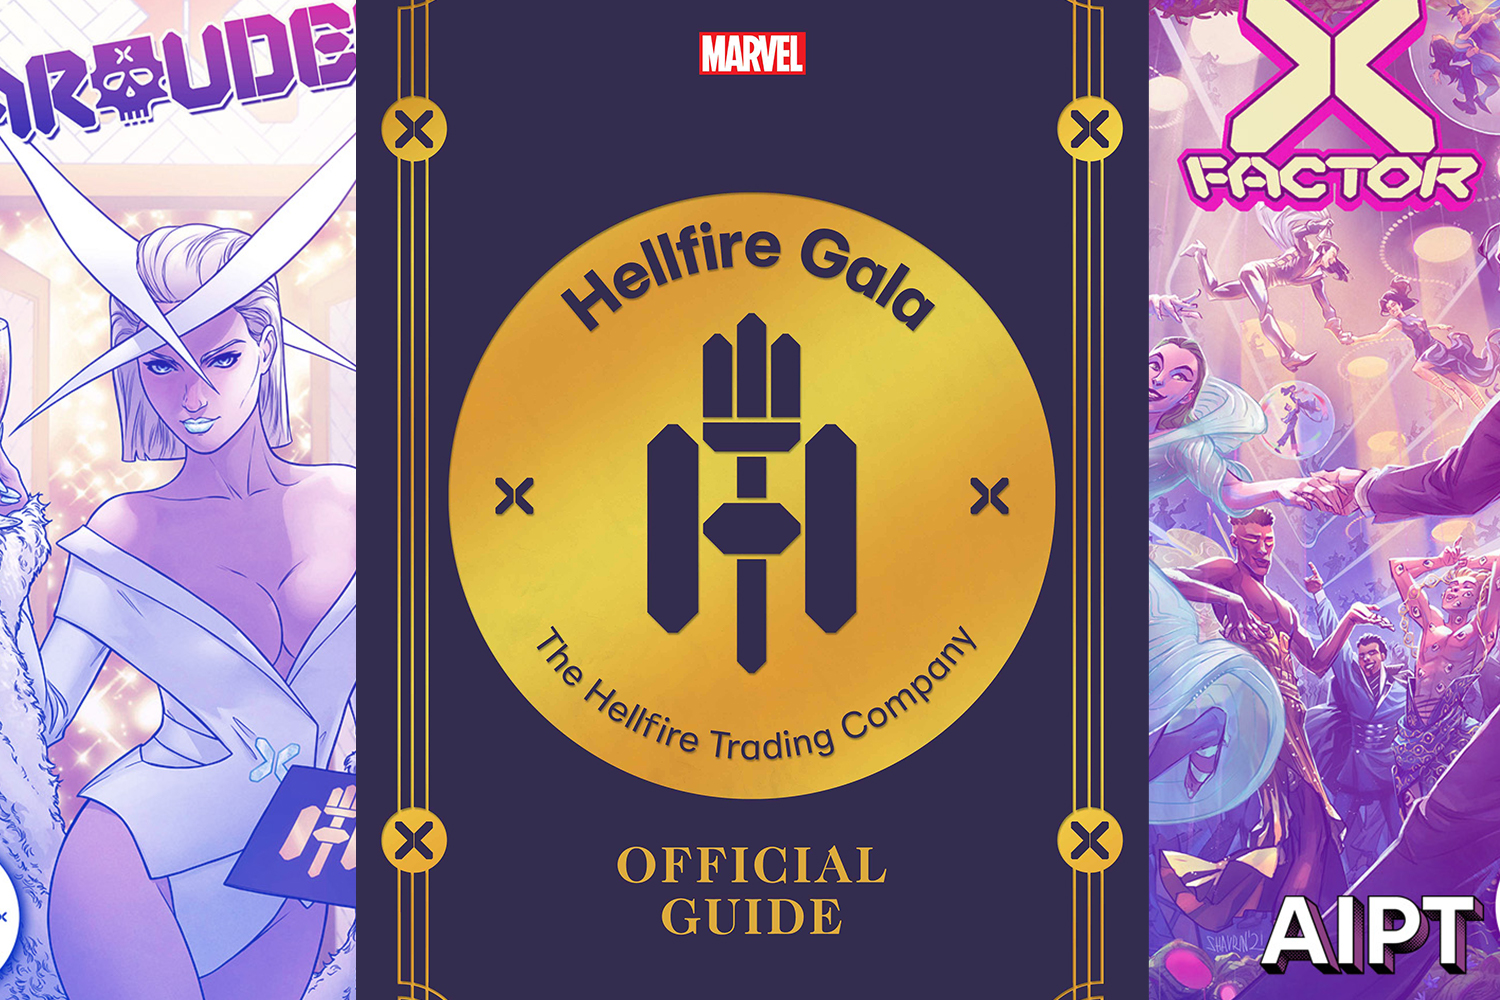 Marvel surprises with free 'Hellfire Gala Guide' out April 28th